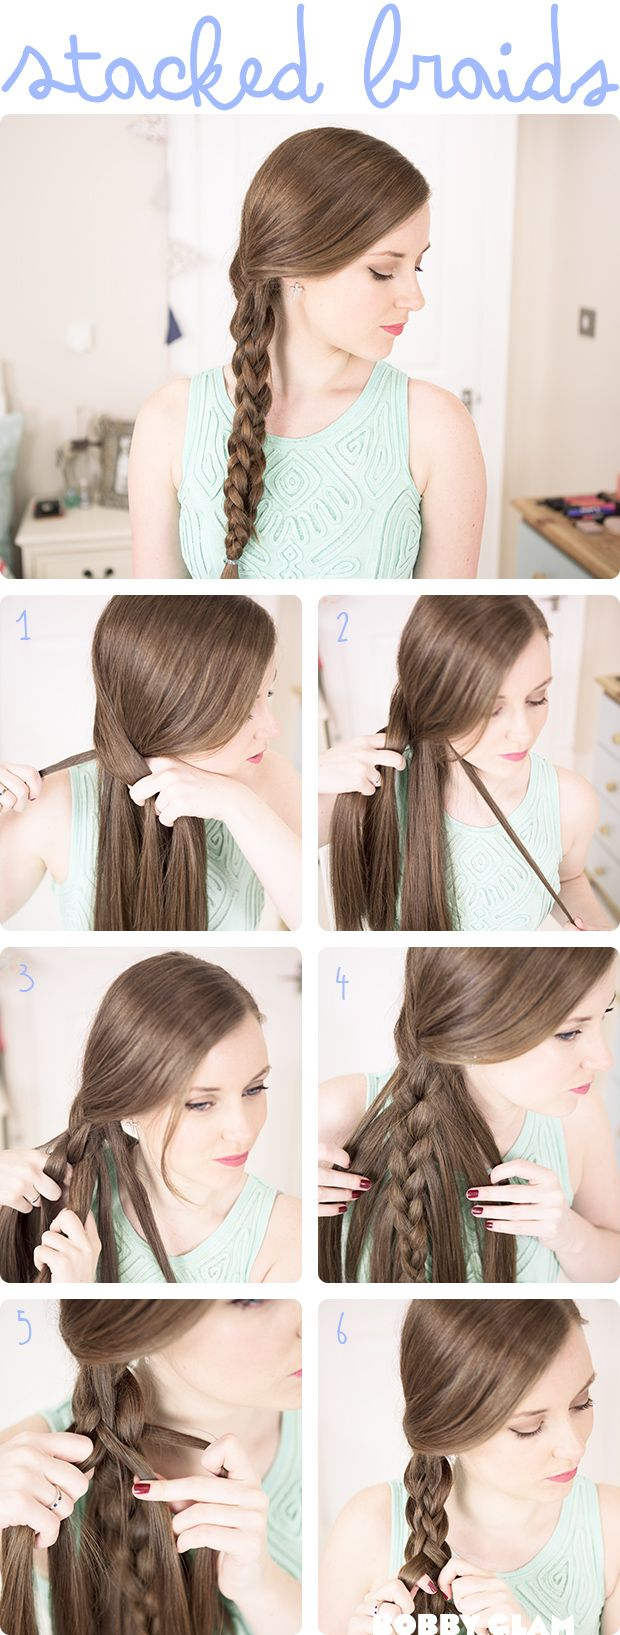 Side hair braid